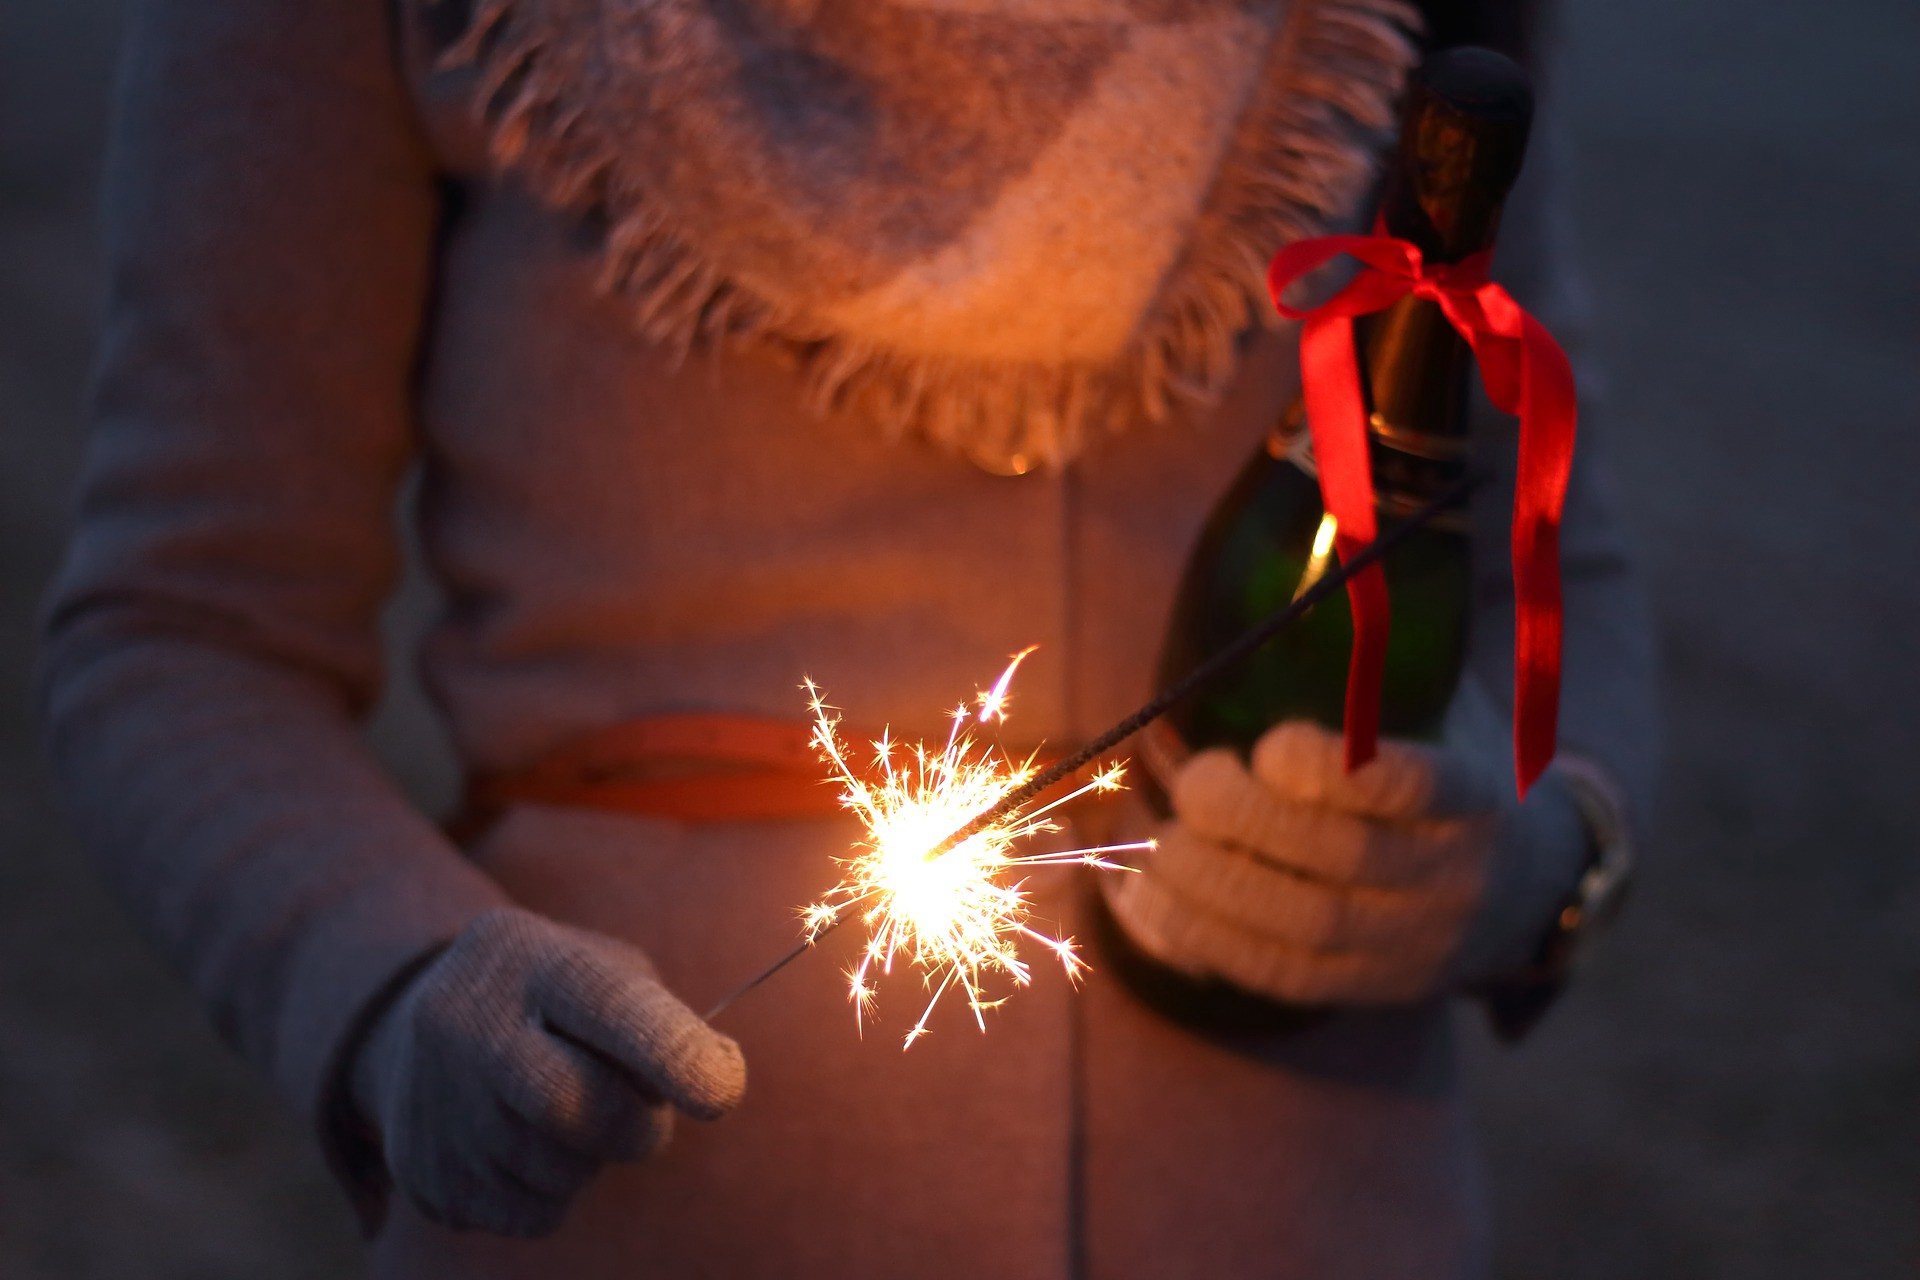 A girl in a warm jacket holding a bottle with a red ribbon on it, wearing gloves. She is holding a lit sparkler